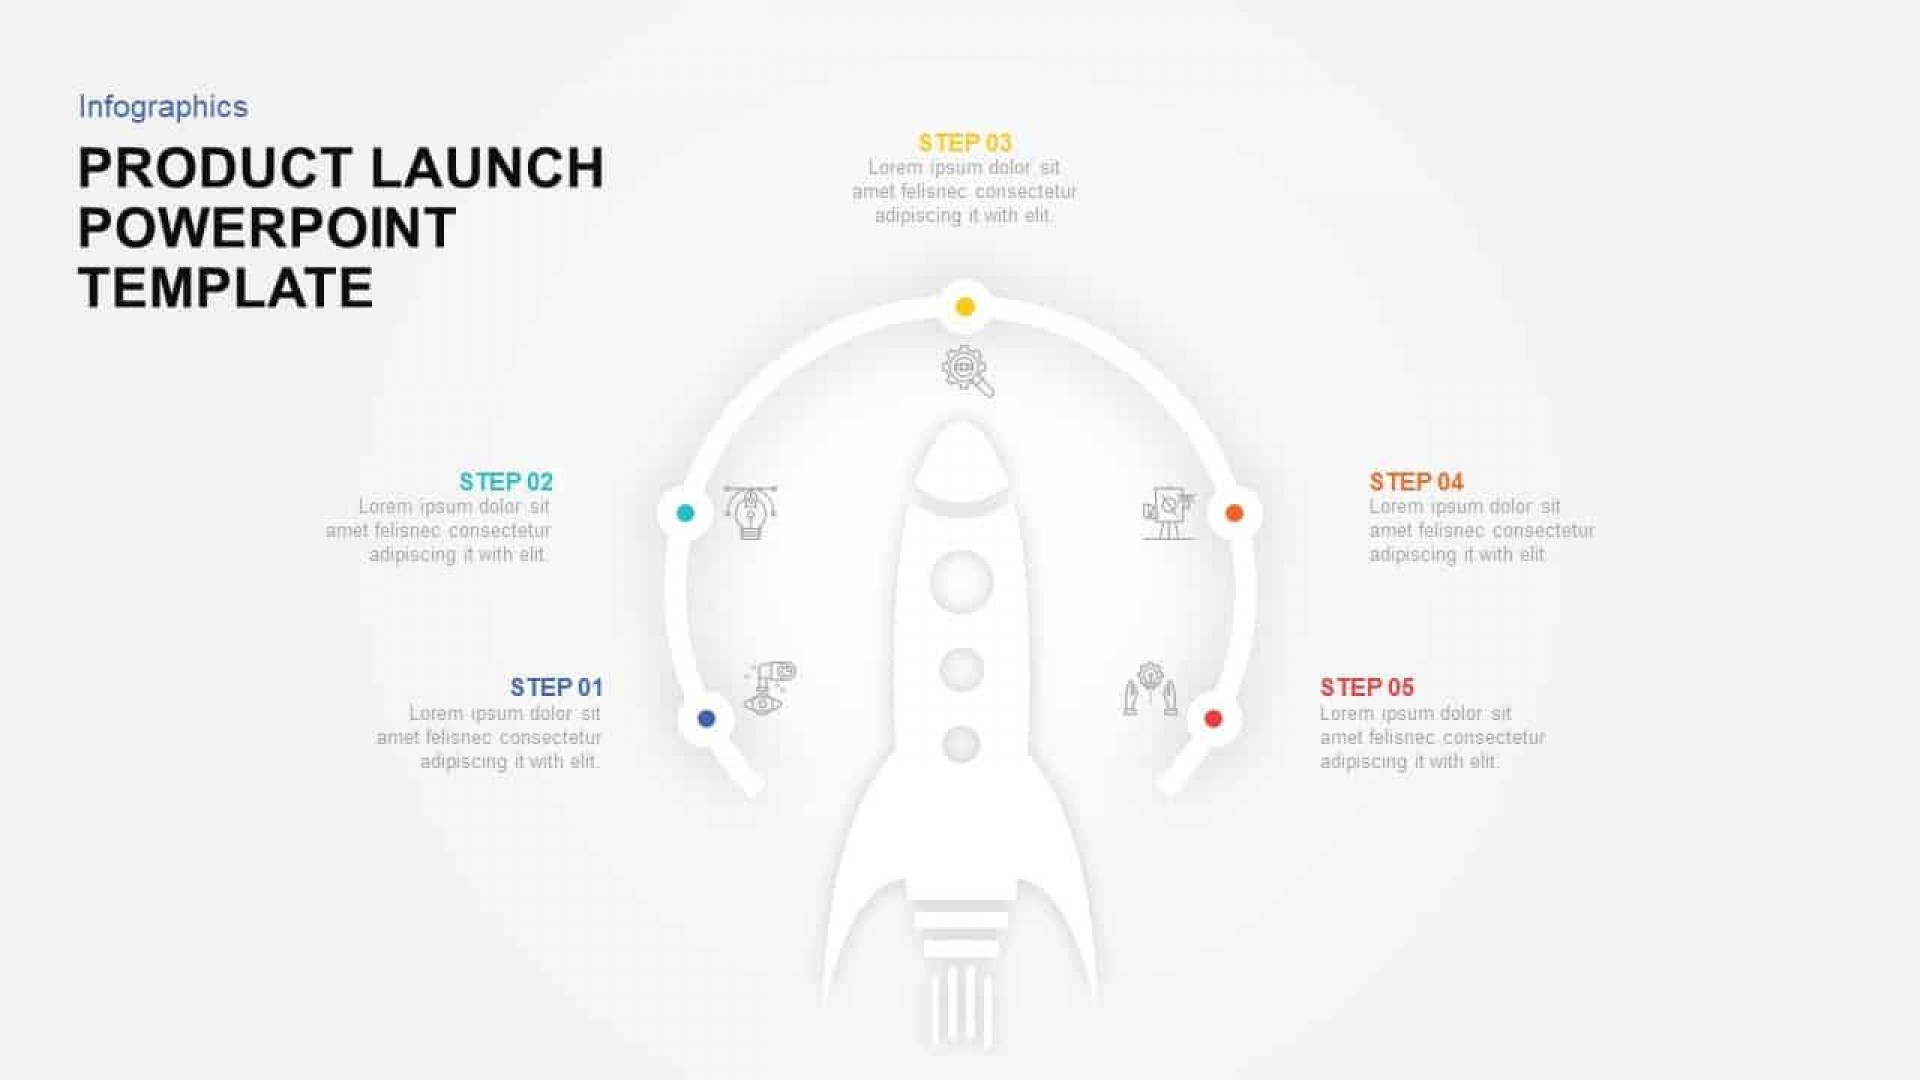 005 Dreaded Product Launch Plan Powerpoint Template Free Sample 1920